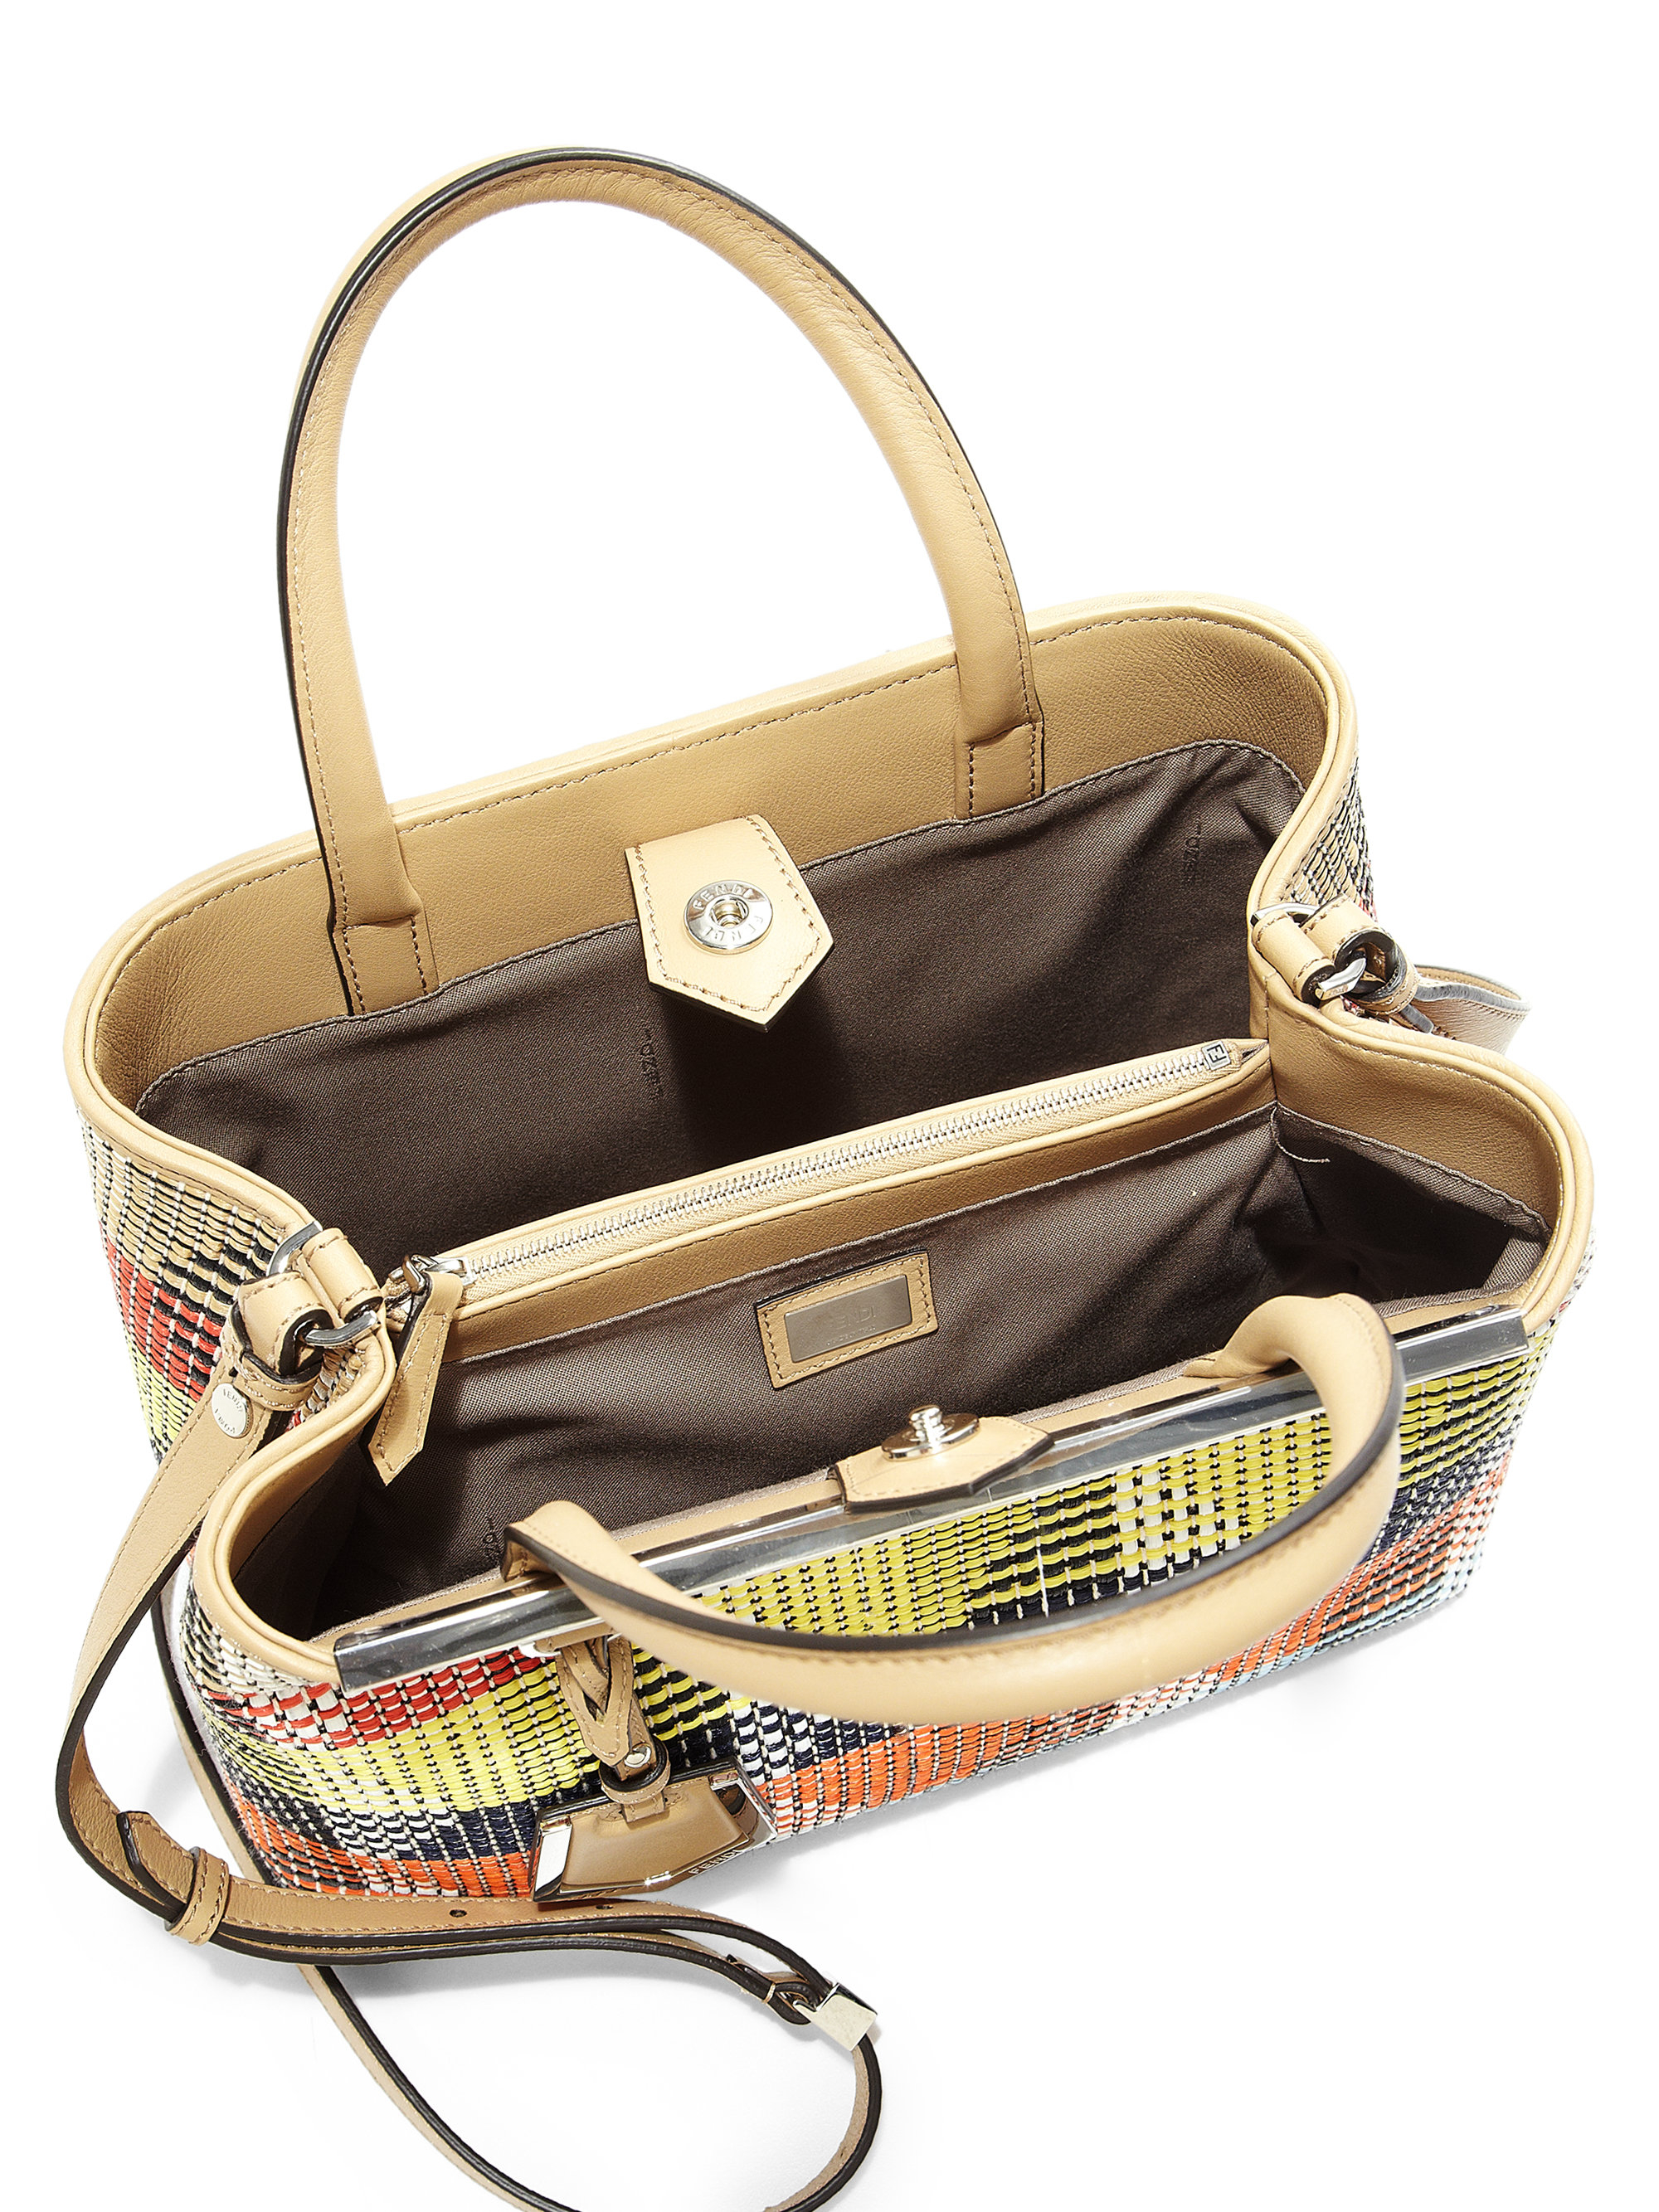 09630972c7f Fendi 2Jours Petite Multicolor Raffia Shopper in Multicolor (MULTI .